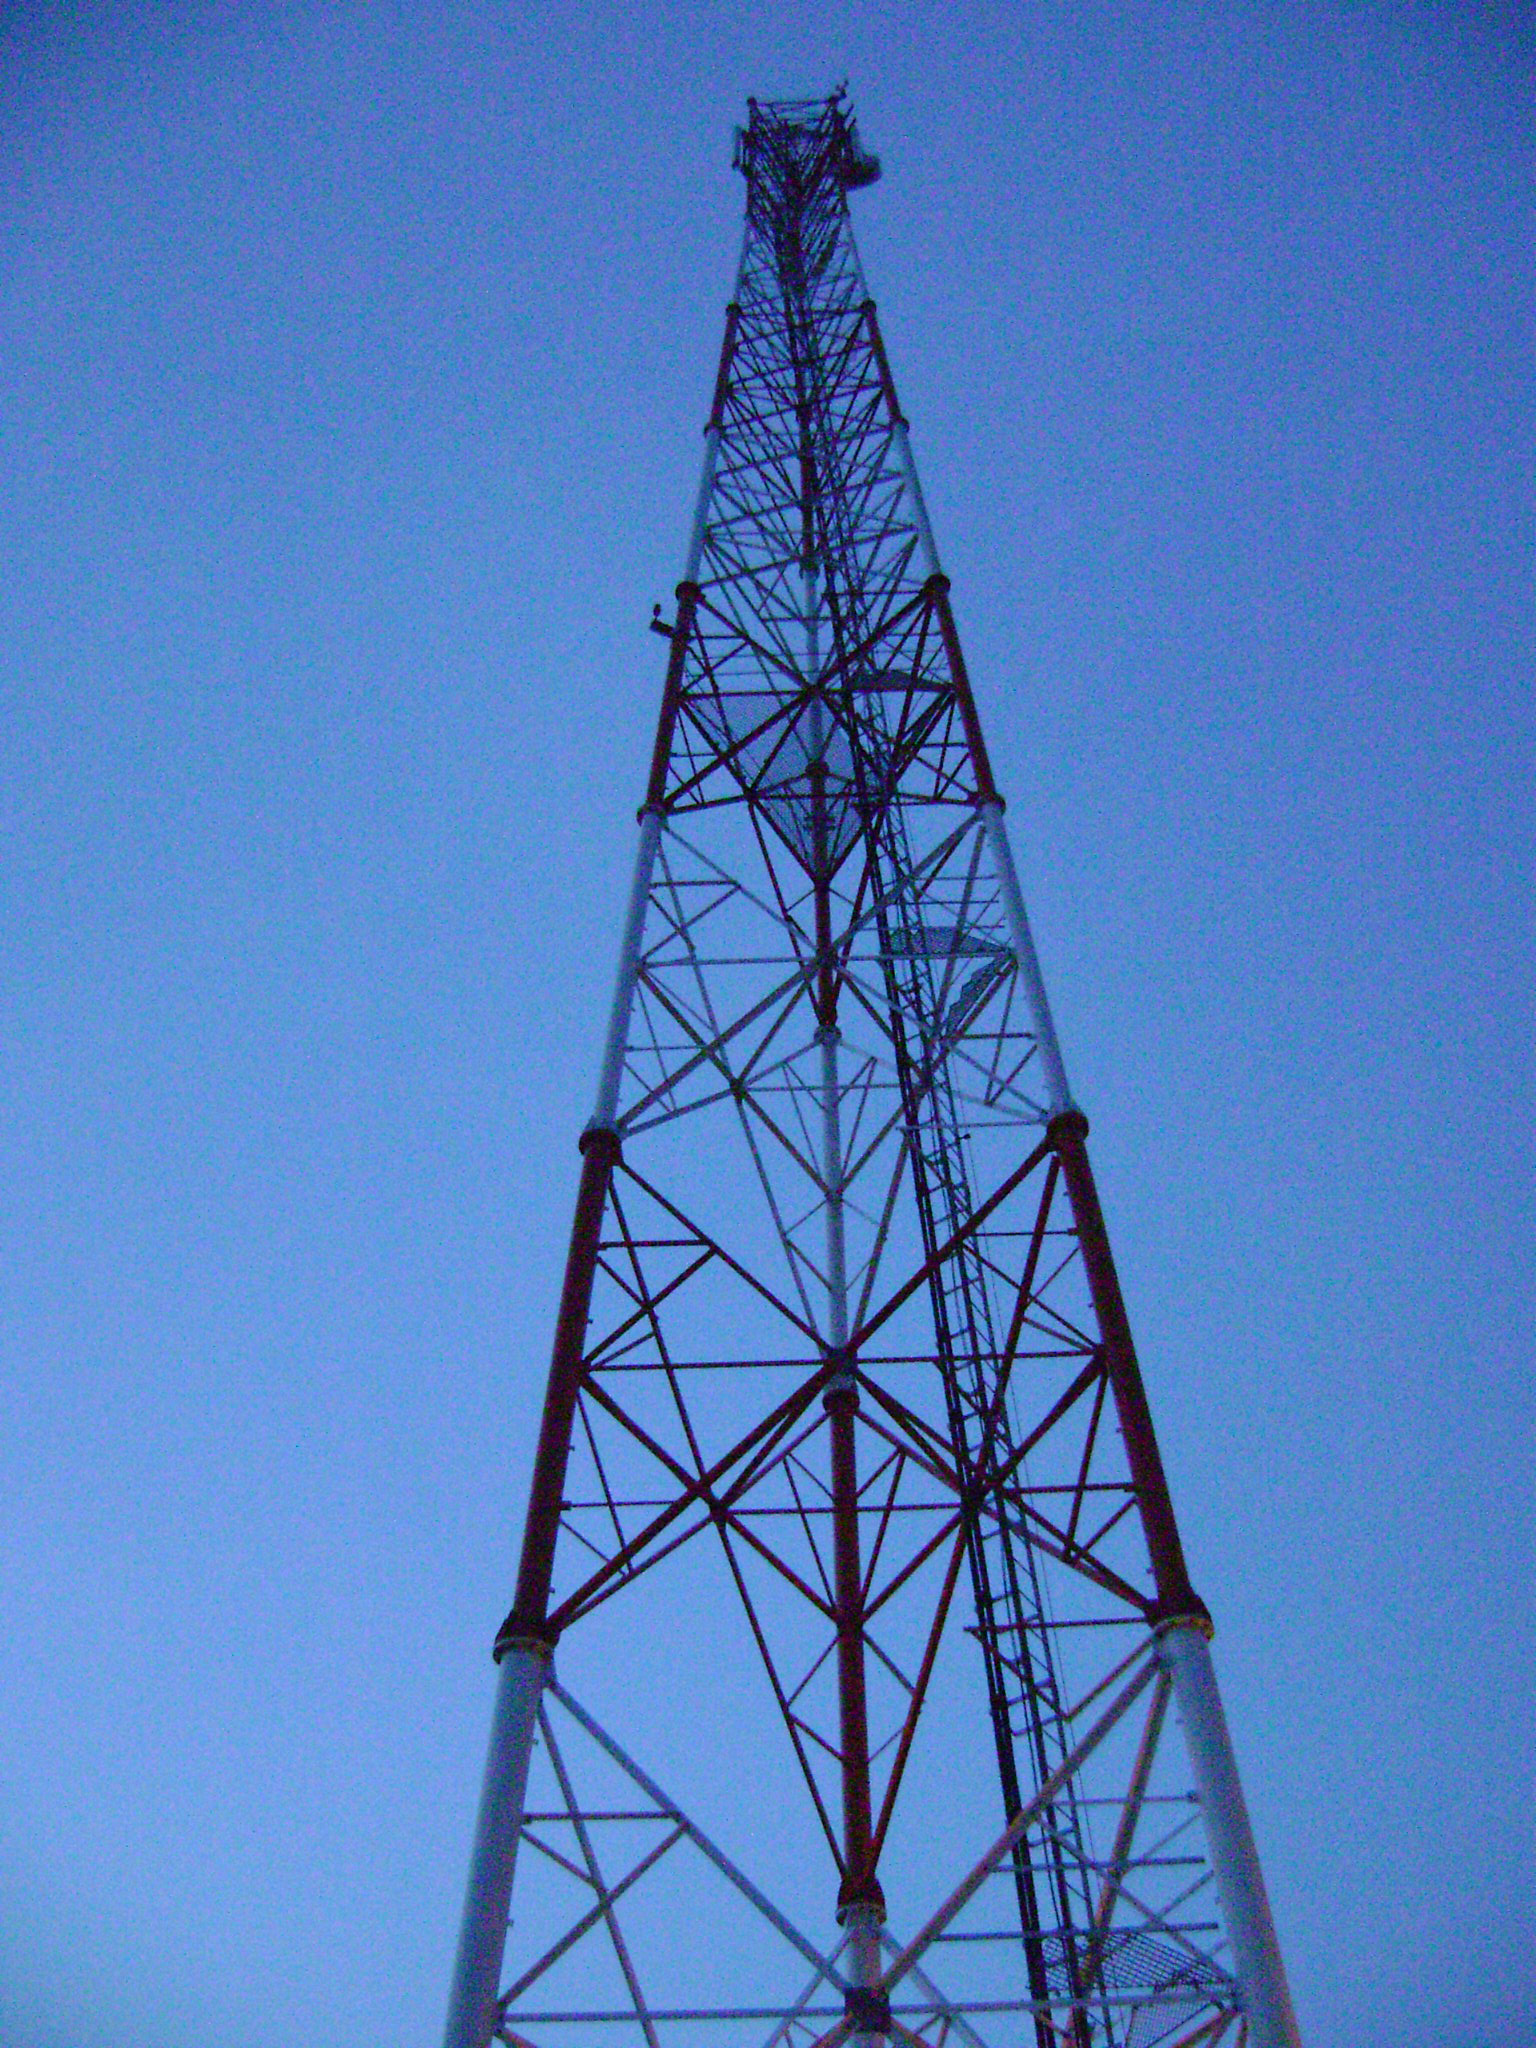 the rise of tower sharing in africa aviat networks